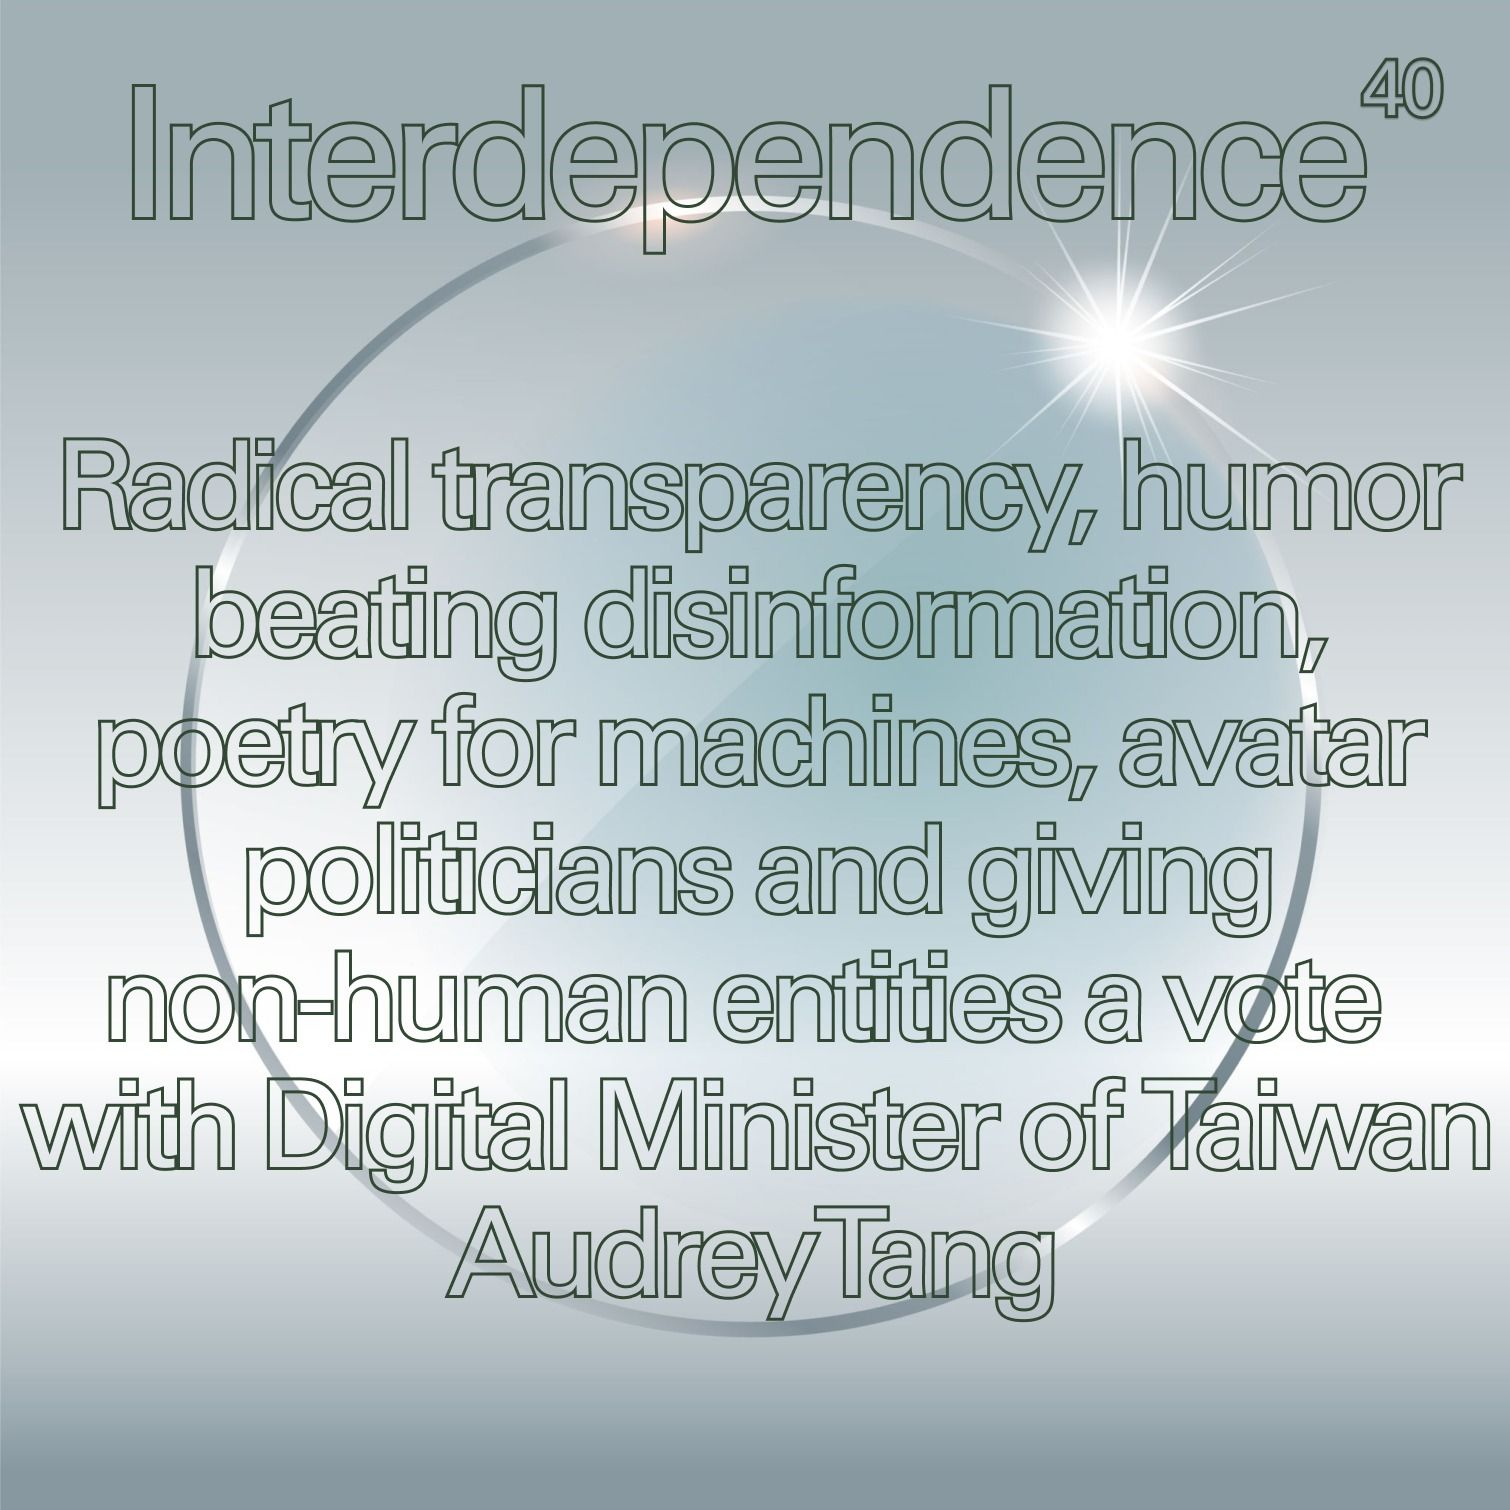 Radical Transparency, humor > disinformation, poetry for machines, avatar politicians and giving non-human entities a vote with Digital Minister of Taiwan Audrey Tang